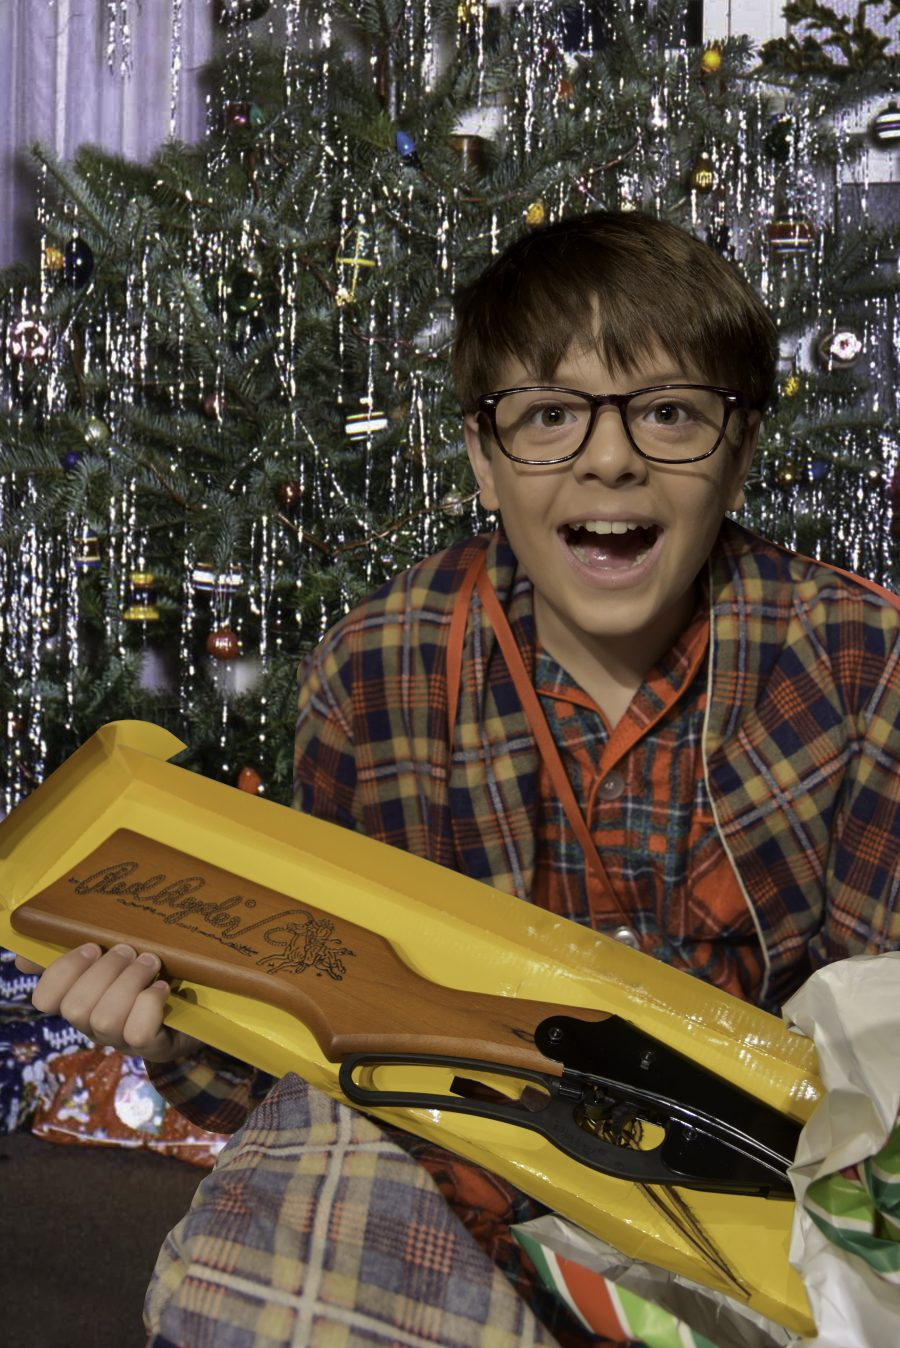 "All Ralphie (Josh Hatfield) wants for Christmas is a Red Ryder carbine-action 200-shot range model air rifle BB gun. Will he get it? ""A Christmas Story, the Musical"" is currently on stage at the Round Barn Theatre in Nappanee through Dec. 31 and it's a must see holiday production."